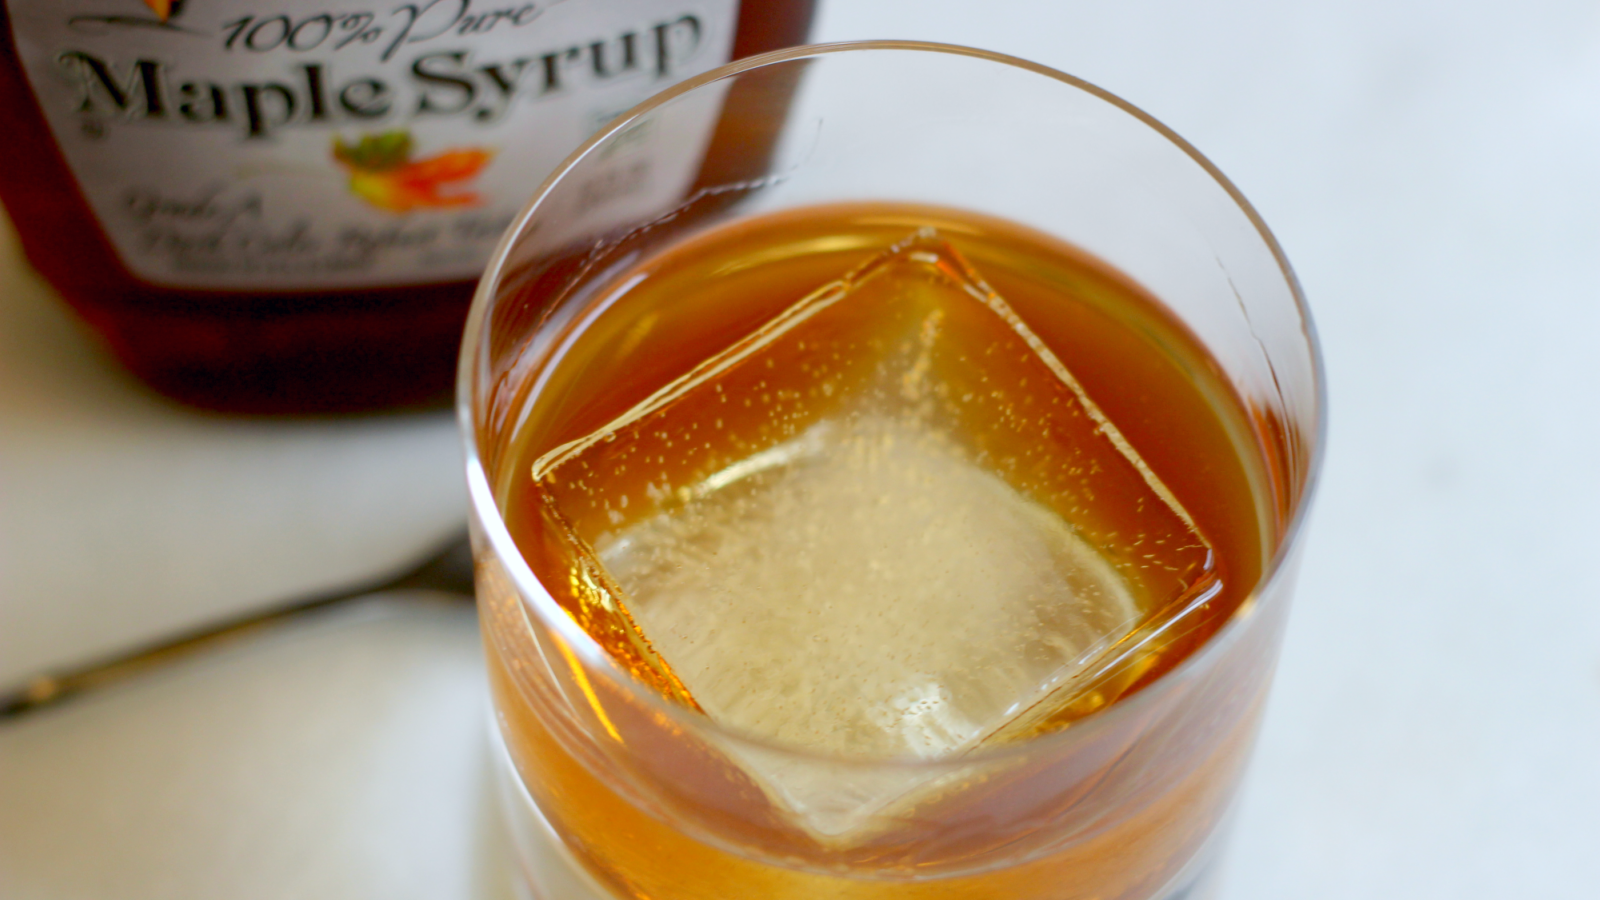 3-Ingredient Happy Hour: A Maple Old Fashioned